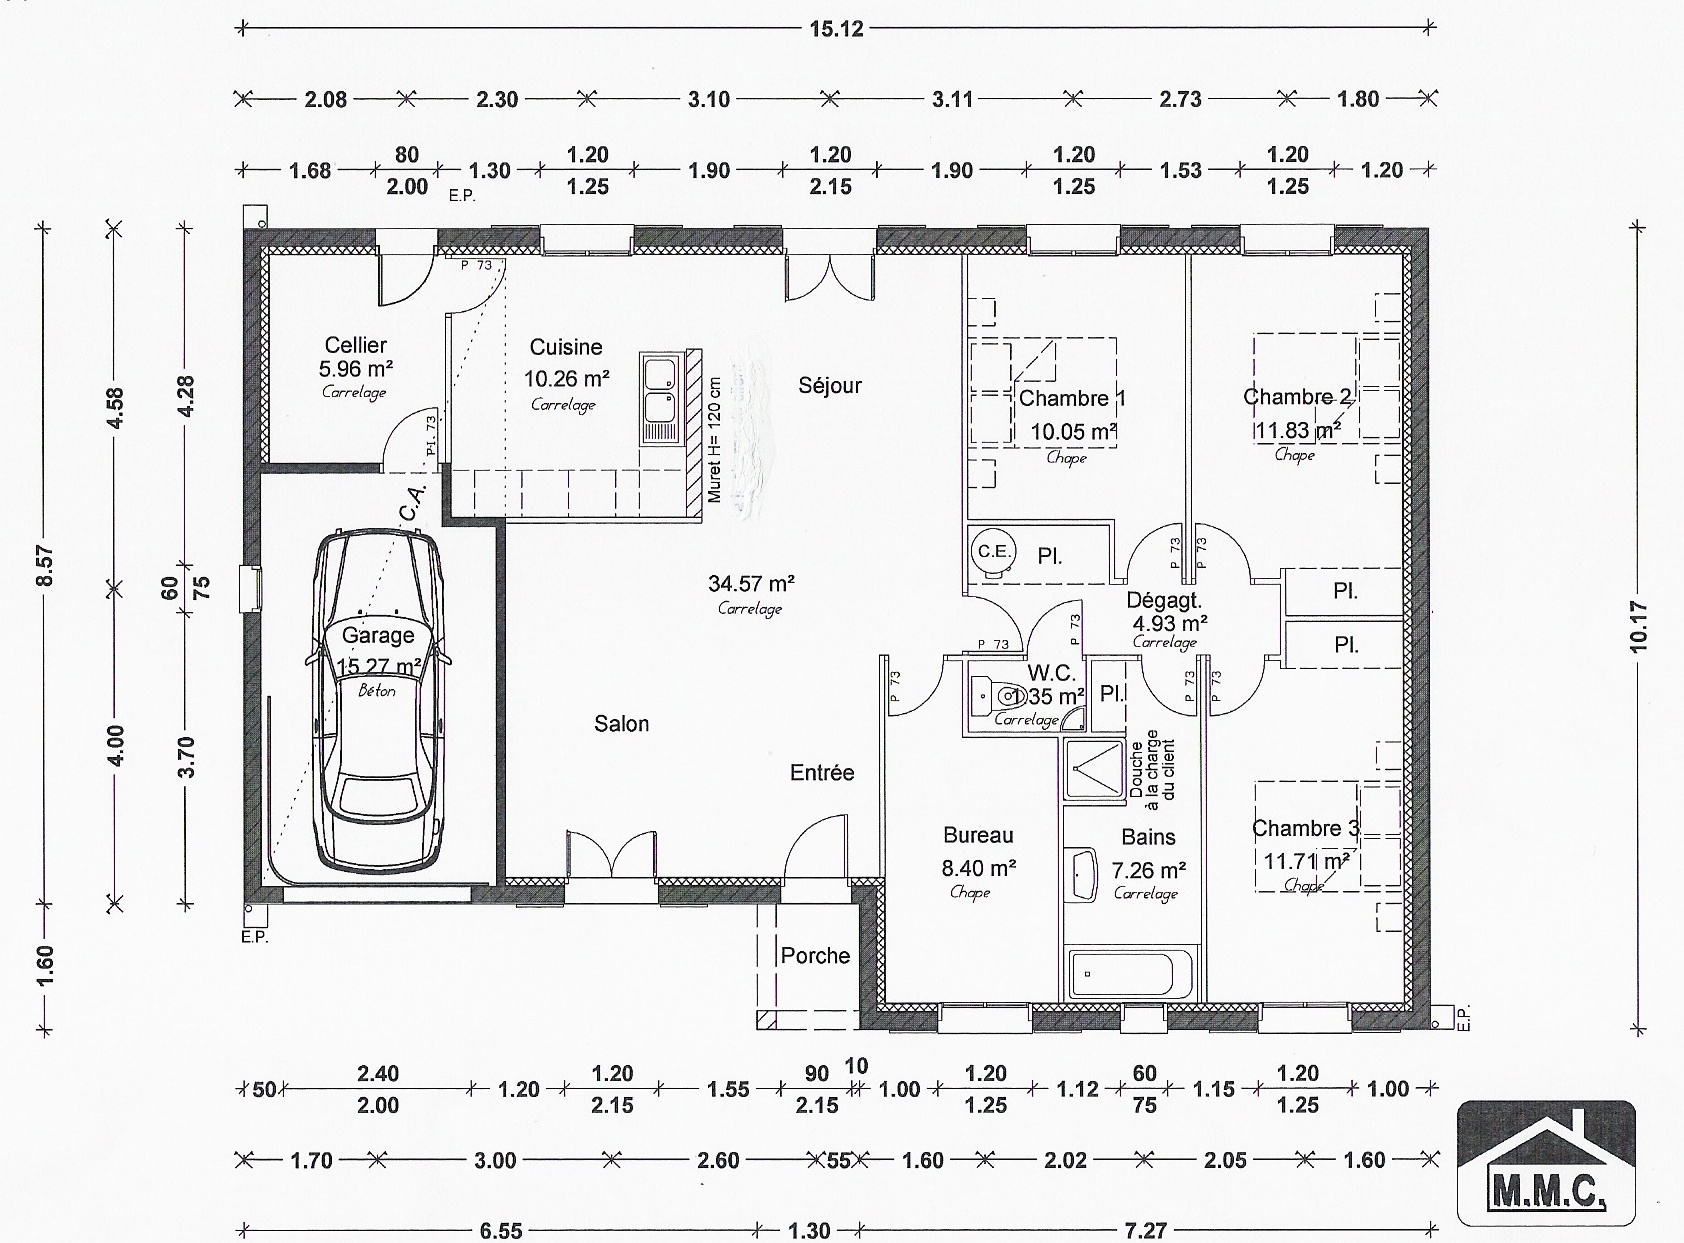 Plan de maison simple l 39 impression 3d for Plan maison simple 4 chambres